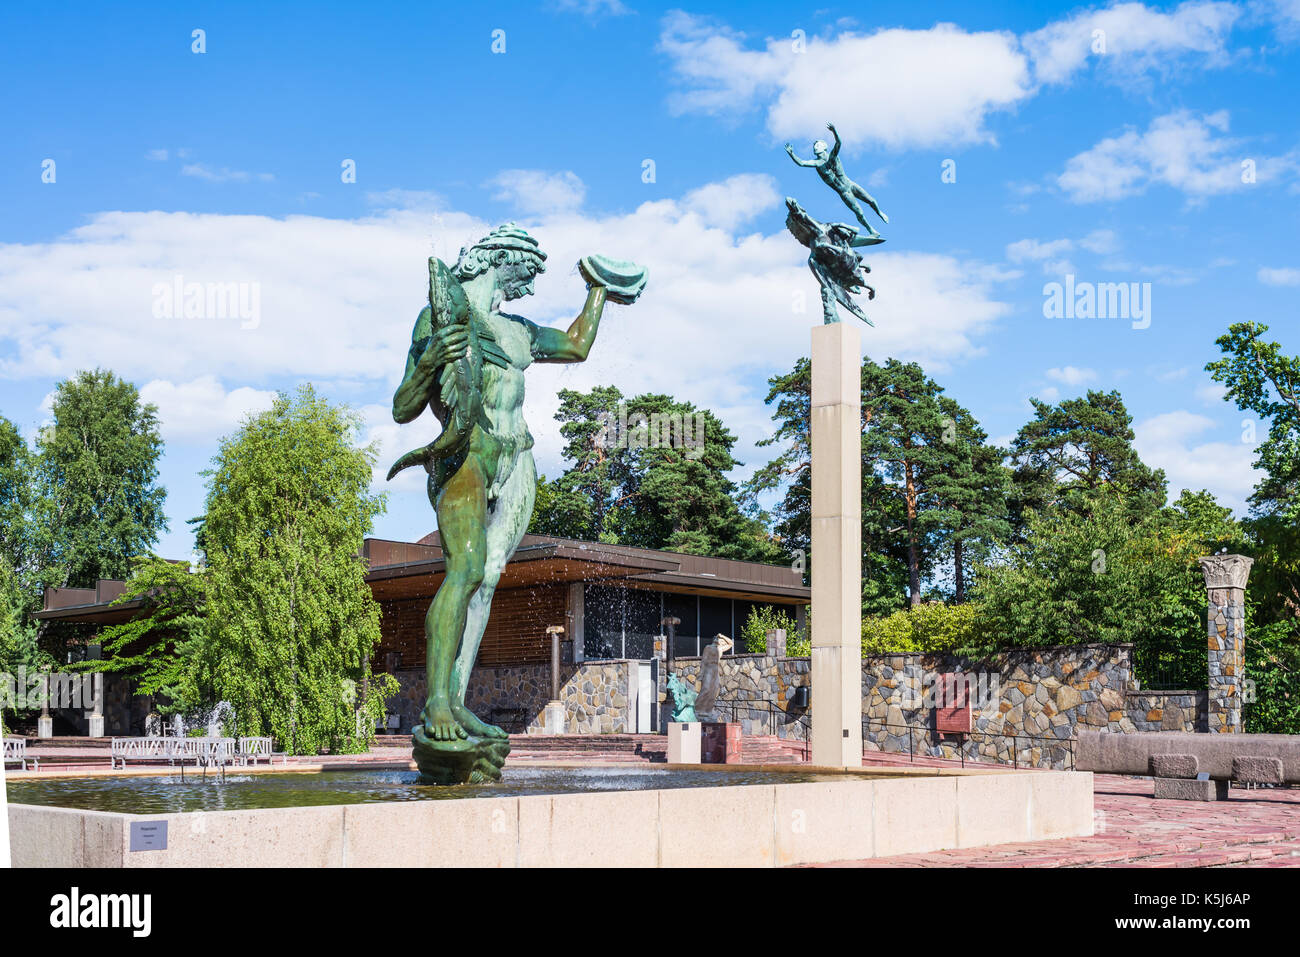 STOCKHOLM, SWEDEN - JULY 31, 2017: Poseidon statue created by Carl Milles, a Swedish sculptor, in the museum of Millesgarden in Stockholm, Sweden - Stock Image